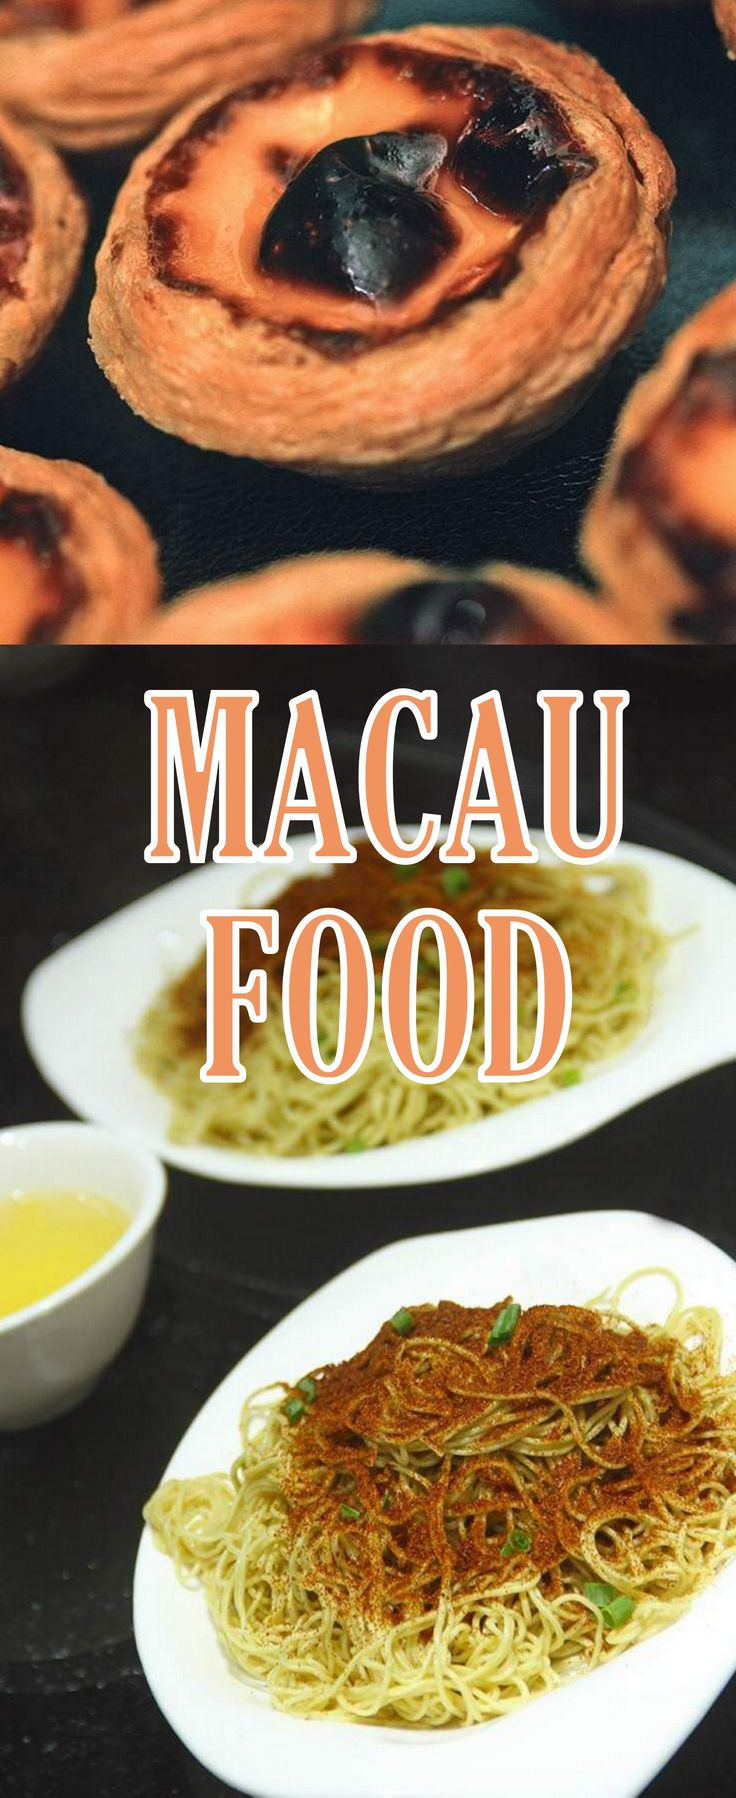 . Macanese food can be found throughout the historic UNESCO World Heritage-listed area of central Macau and the adjoining islands of the territory.